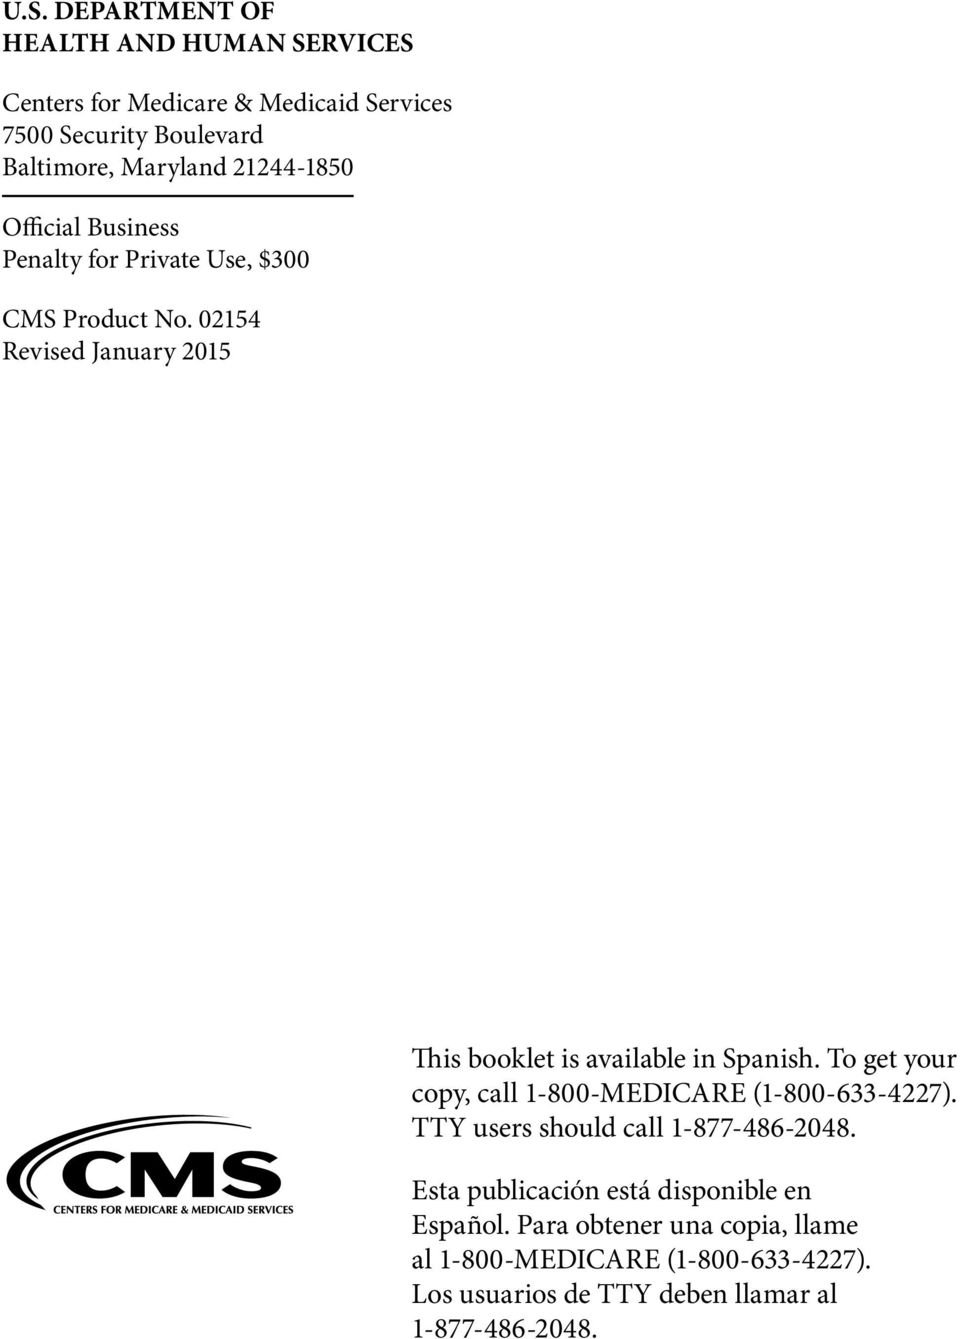 02154 Revised January 2015 This booklet is available in Spanish. To get your copy, call 1-800-MEDICARE (1-800-633-4227).